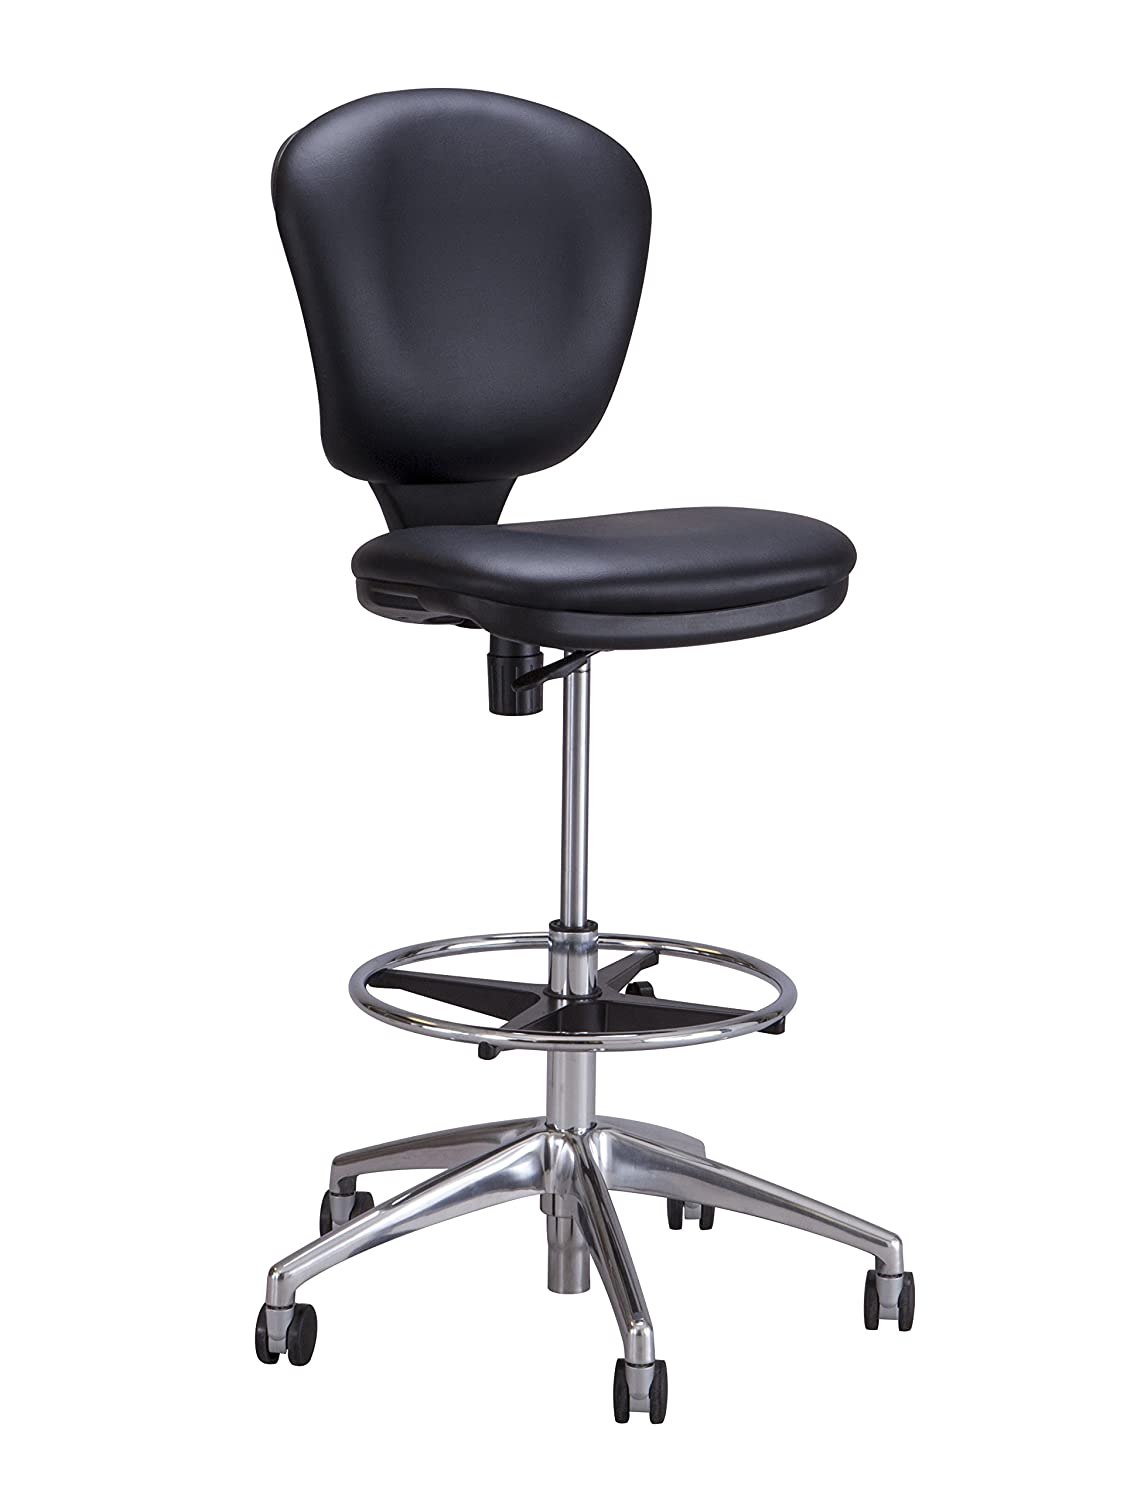 amazoncom safco products bl metro extended height chair  - amazoncom safco products bl metro extended height chair (additionaloptions sold separately) black kitchen  dining